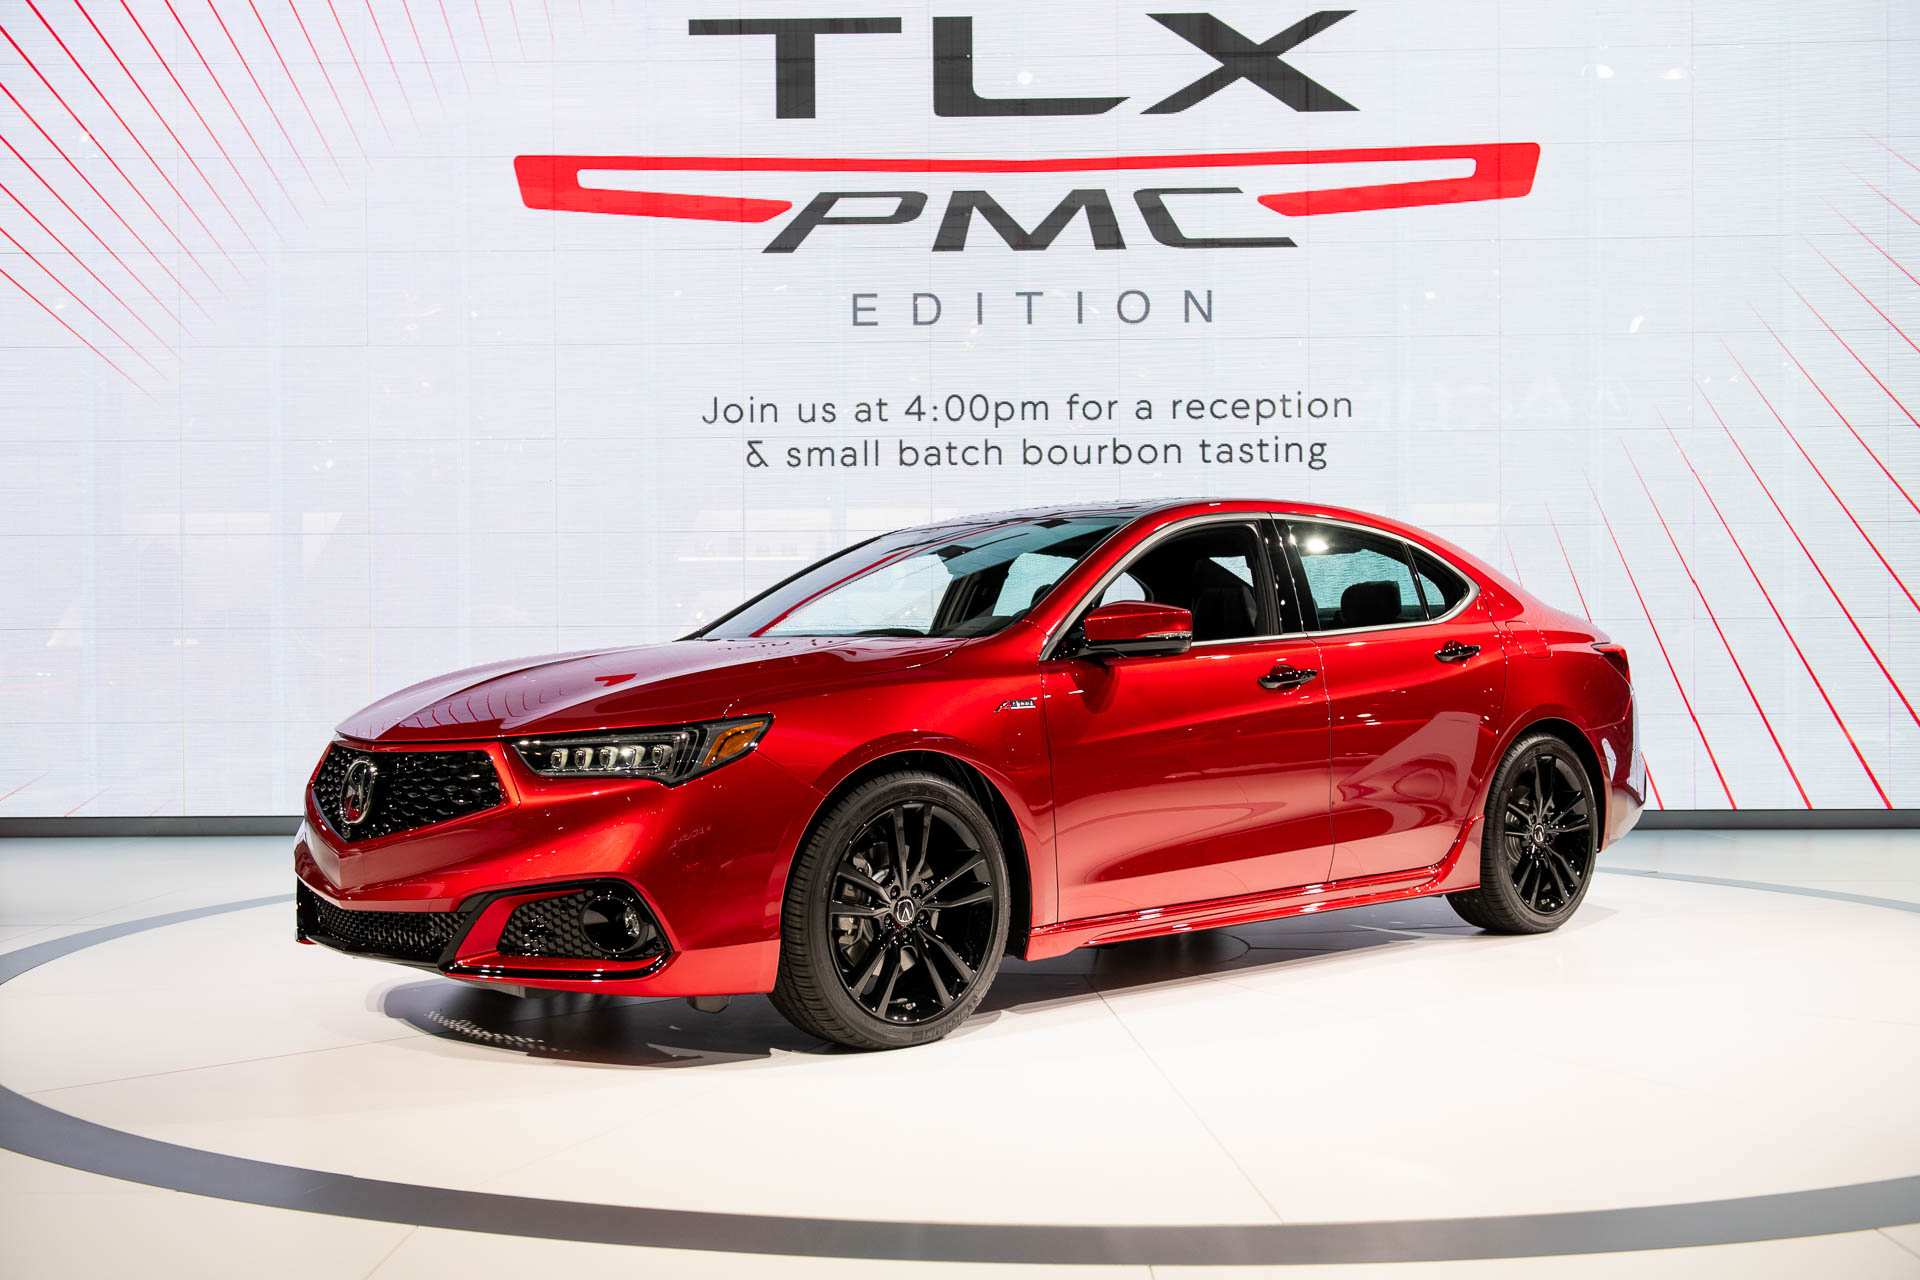 80 The 2020 Acura Tlx Pmc Edition Prices